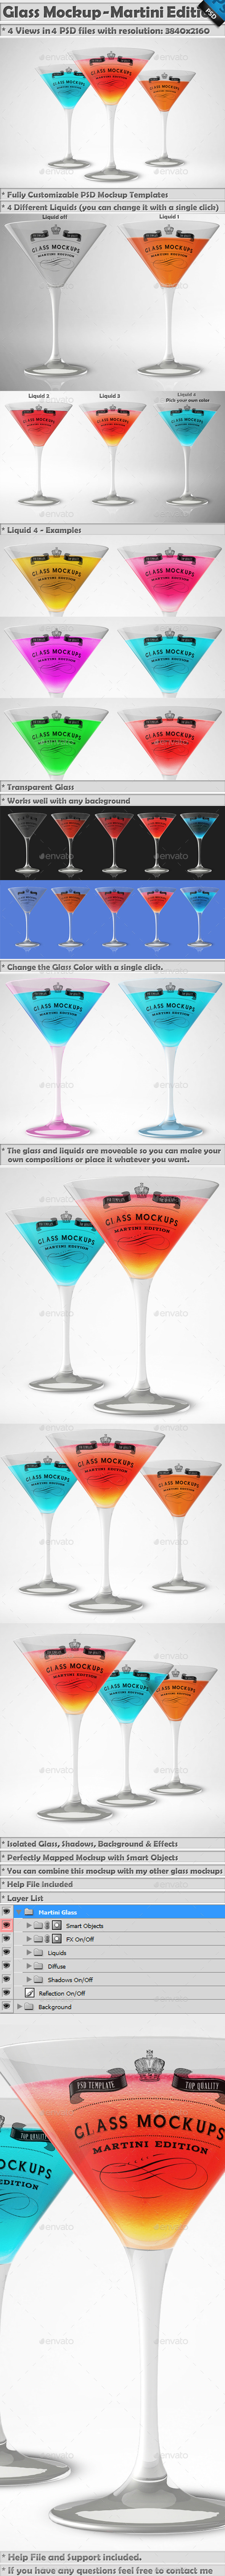 Glass Mockup - Martini Glass Mockup Volume 3   - Miscellaneous Print